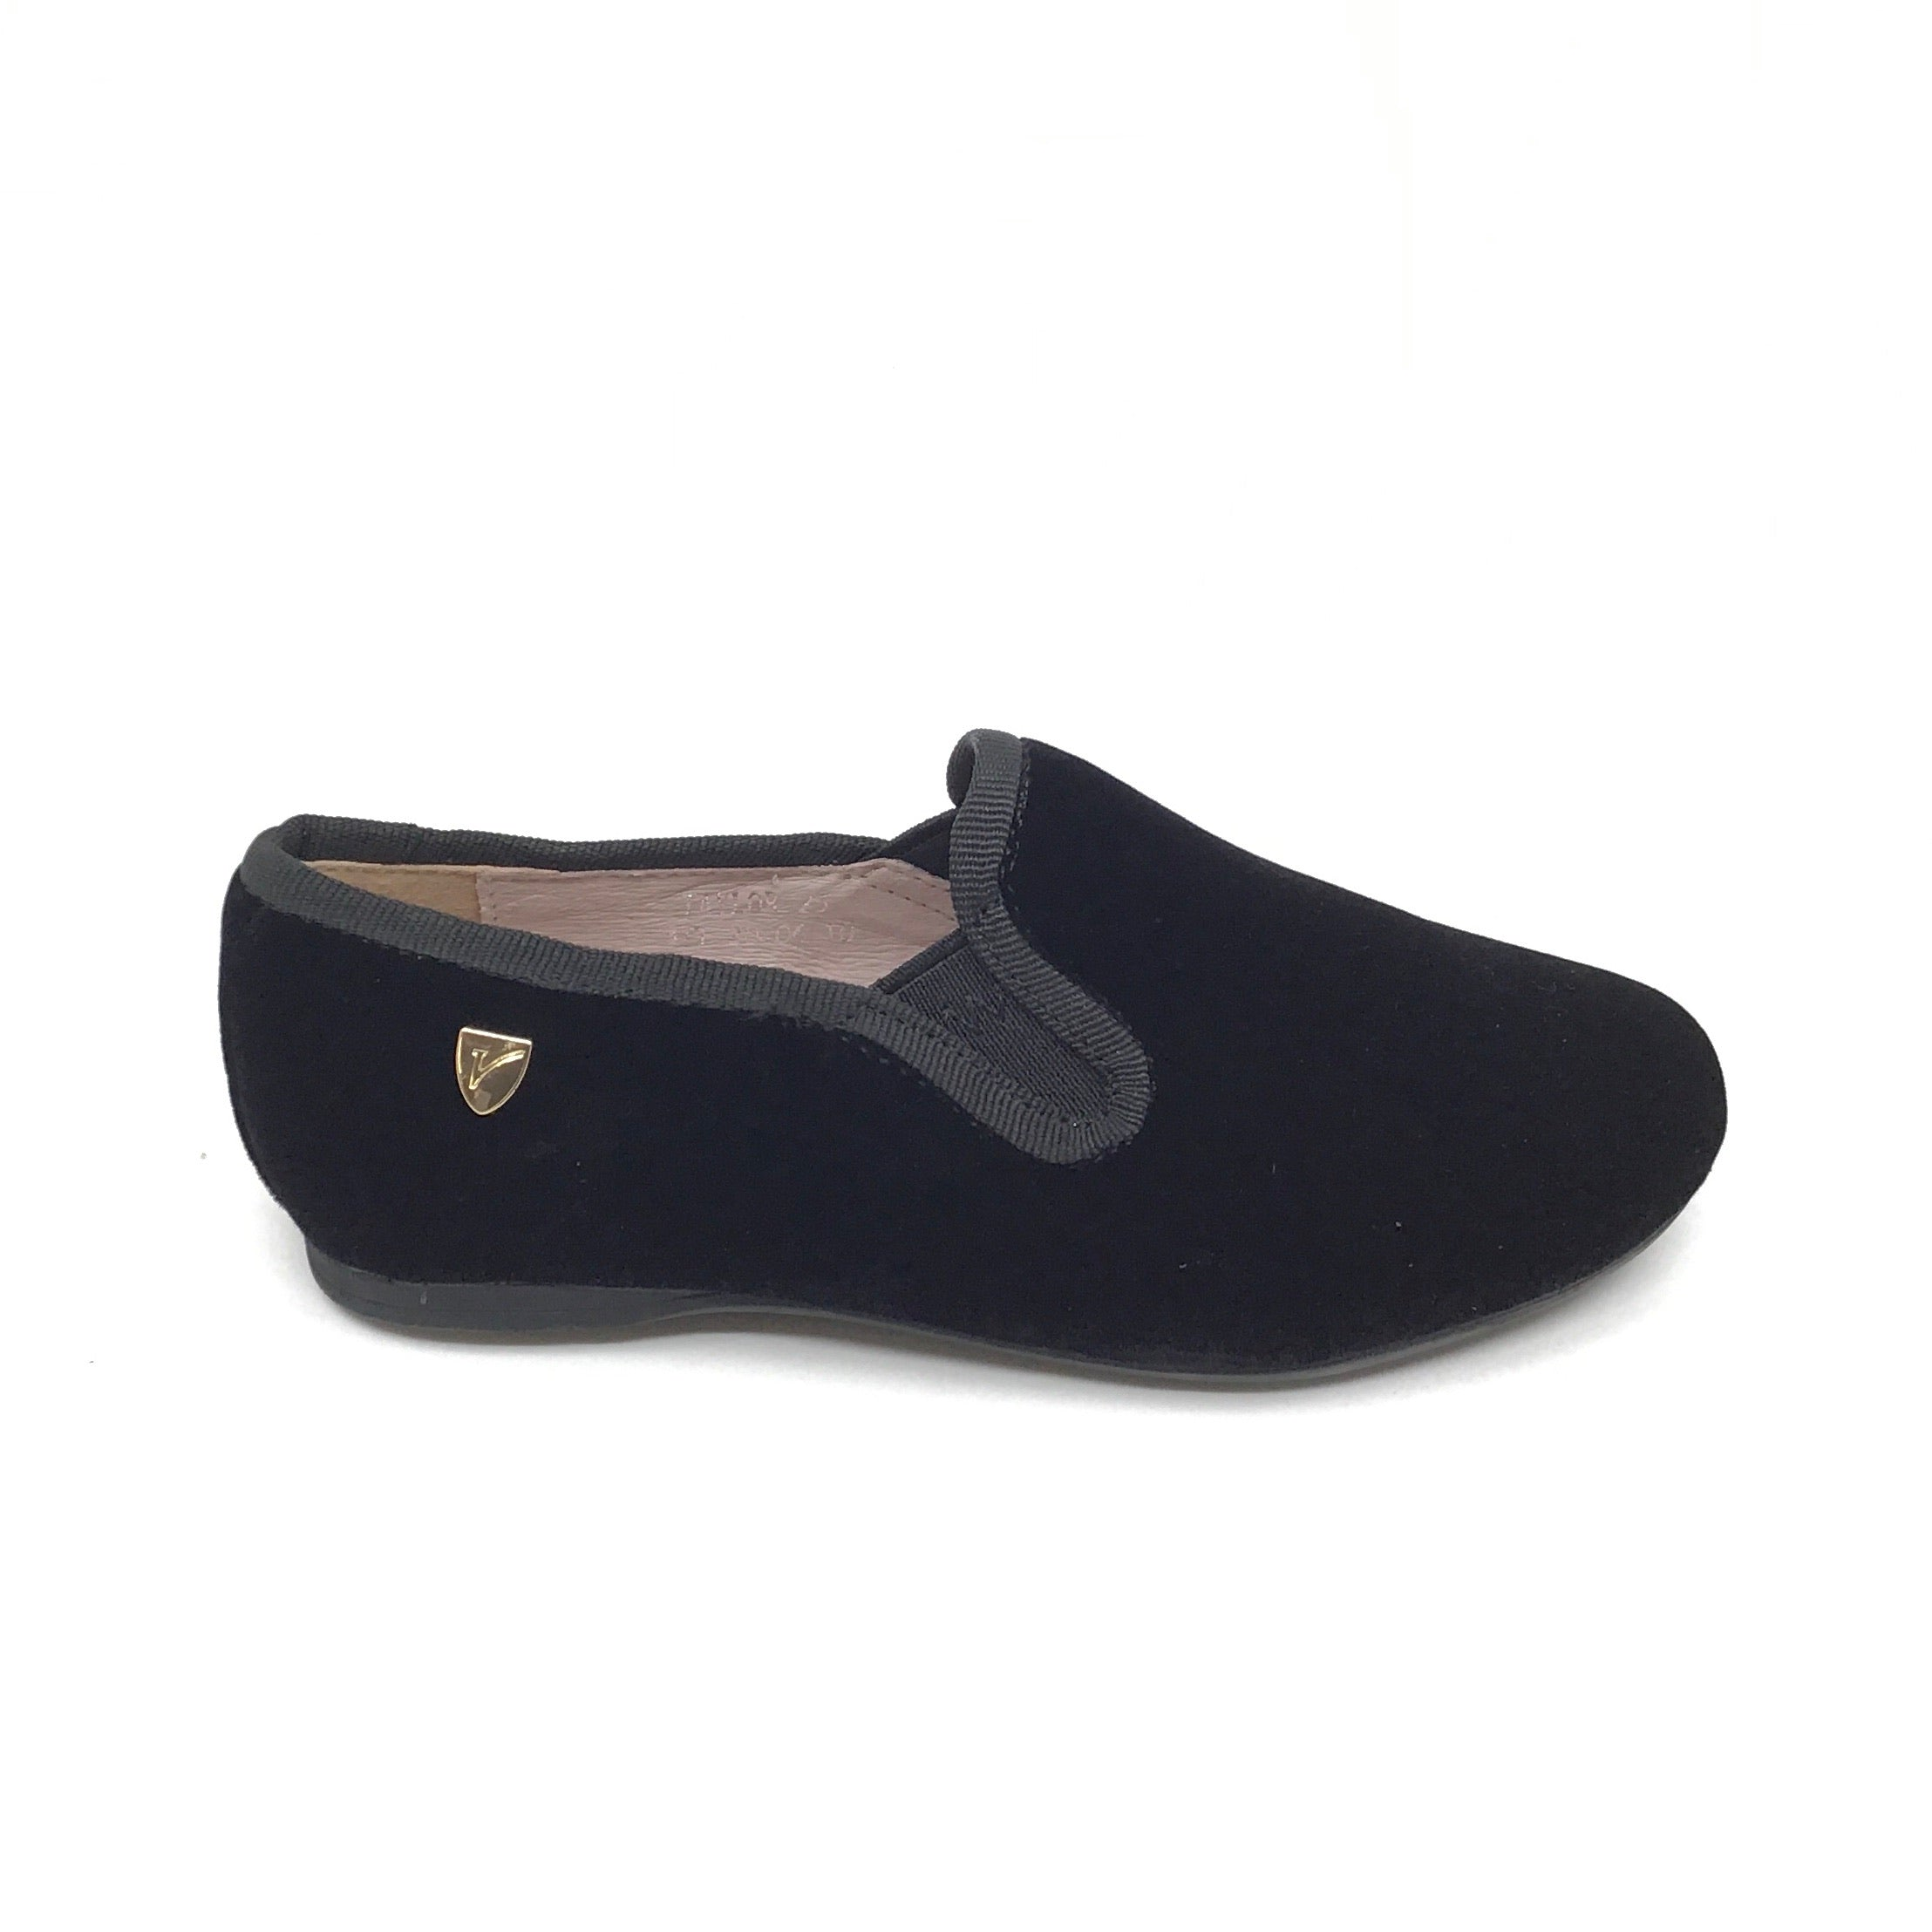 Venettini Black Velvet Slip On